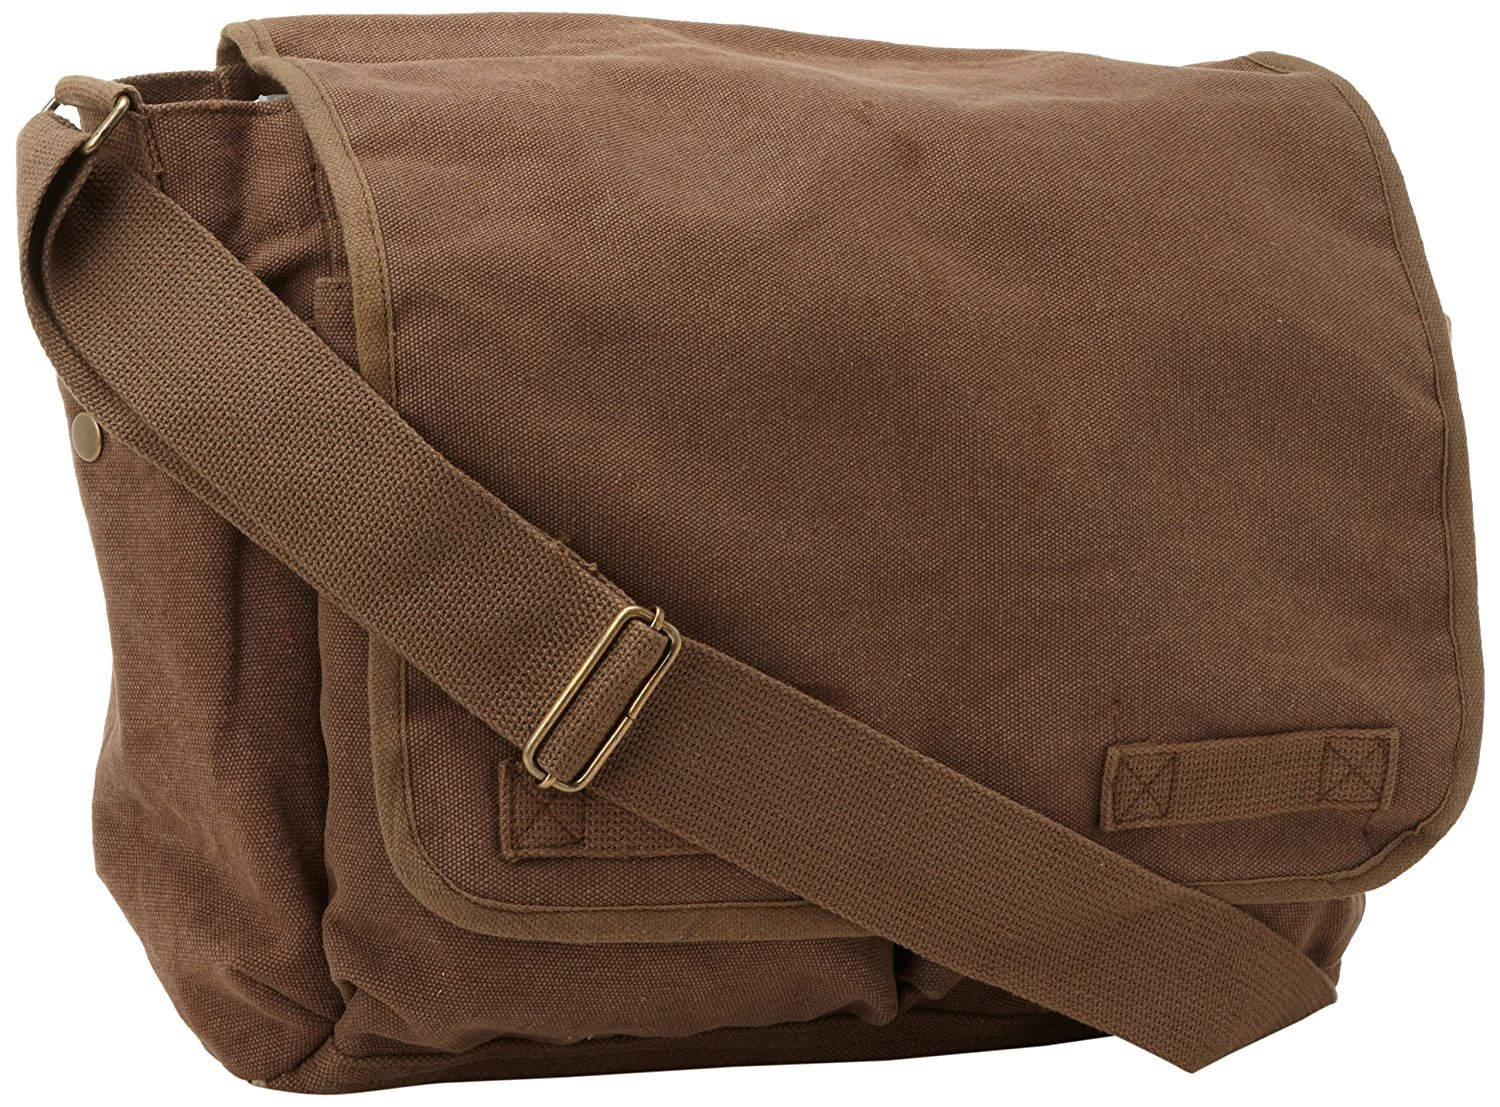 Brown Original Heavyweight Cotton Canvas Classic Heavyweight Military Messenger Bag with Army Universe Pin